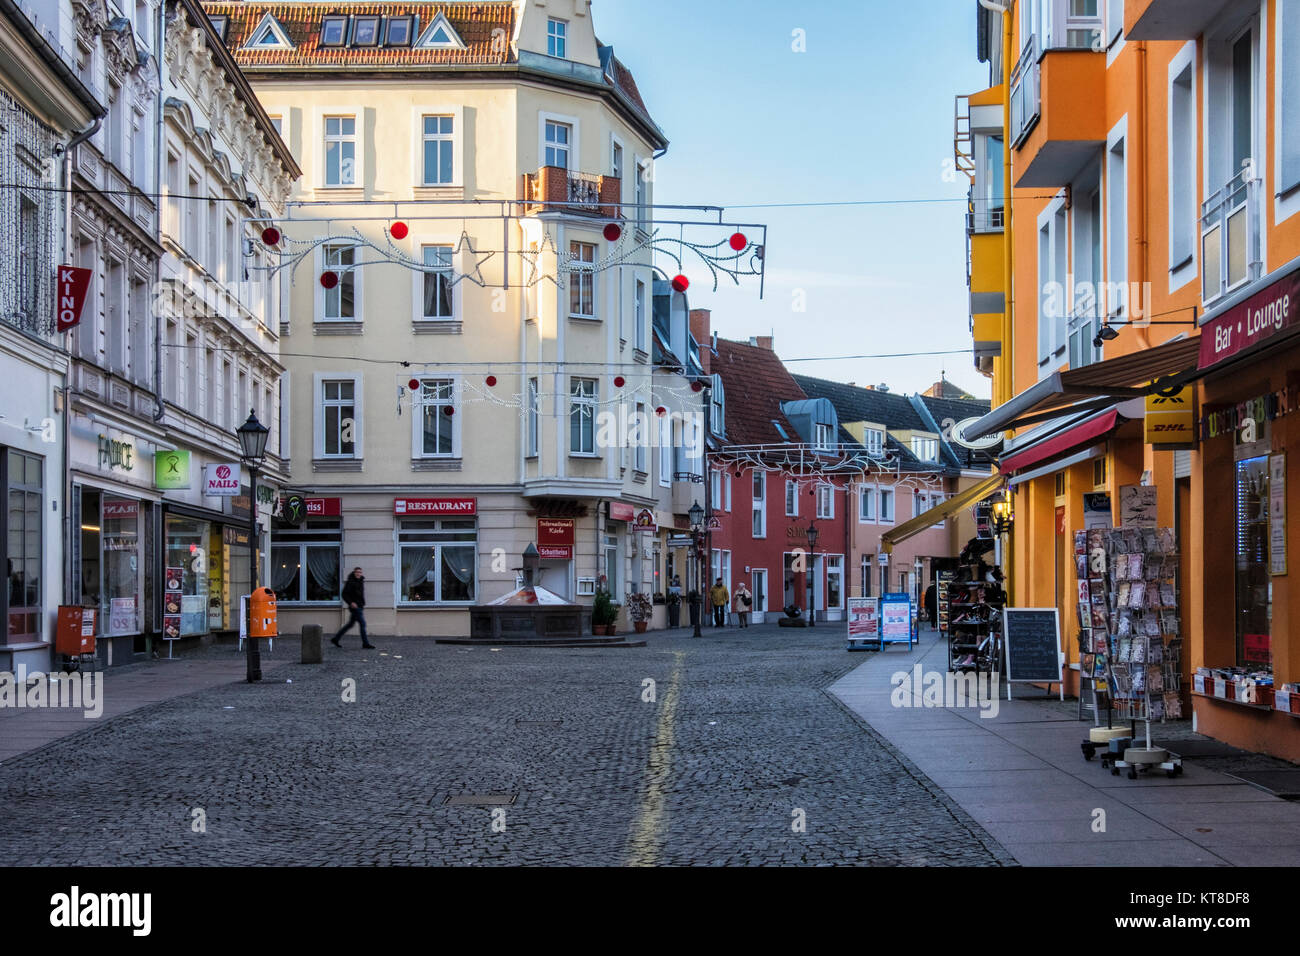 traditional restaurant berlin stock photos traditional restaurant berlin stock images alamy. Black Bedroom Furniture Sets. Home Design Ideas